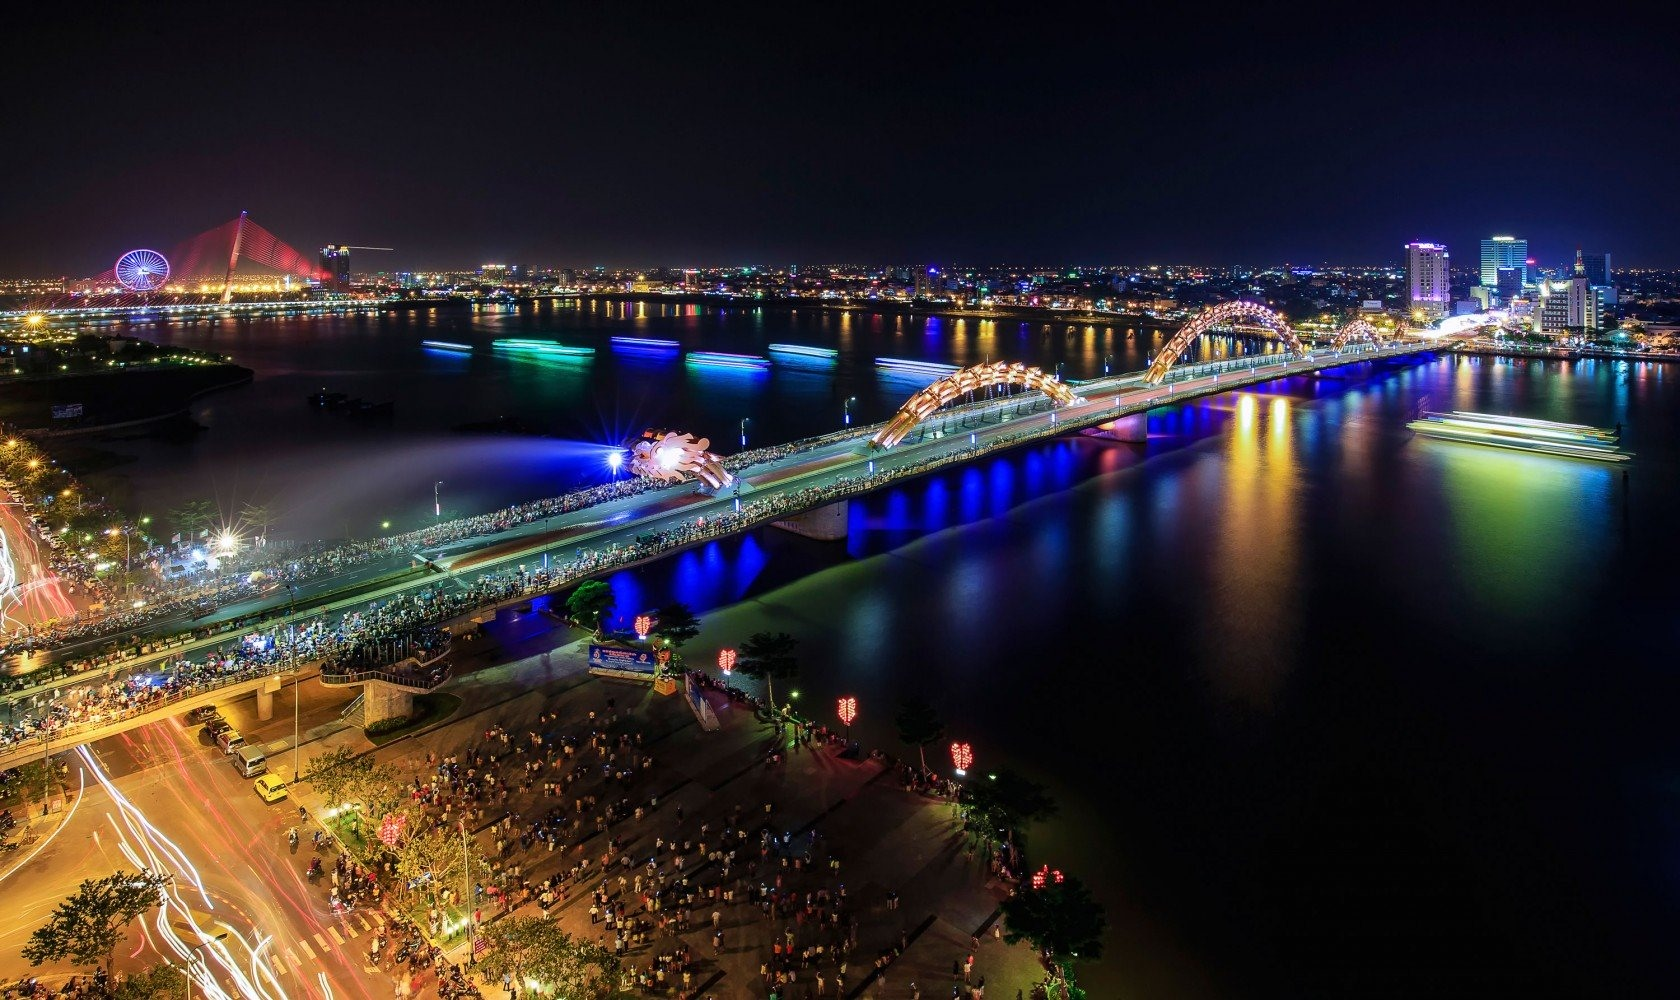 Da Nang, the city of bridges is always beautiful and attractive both day and night.